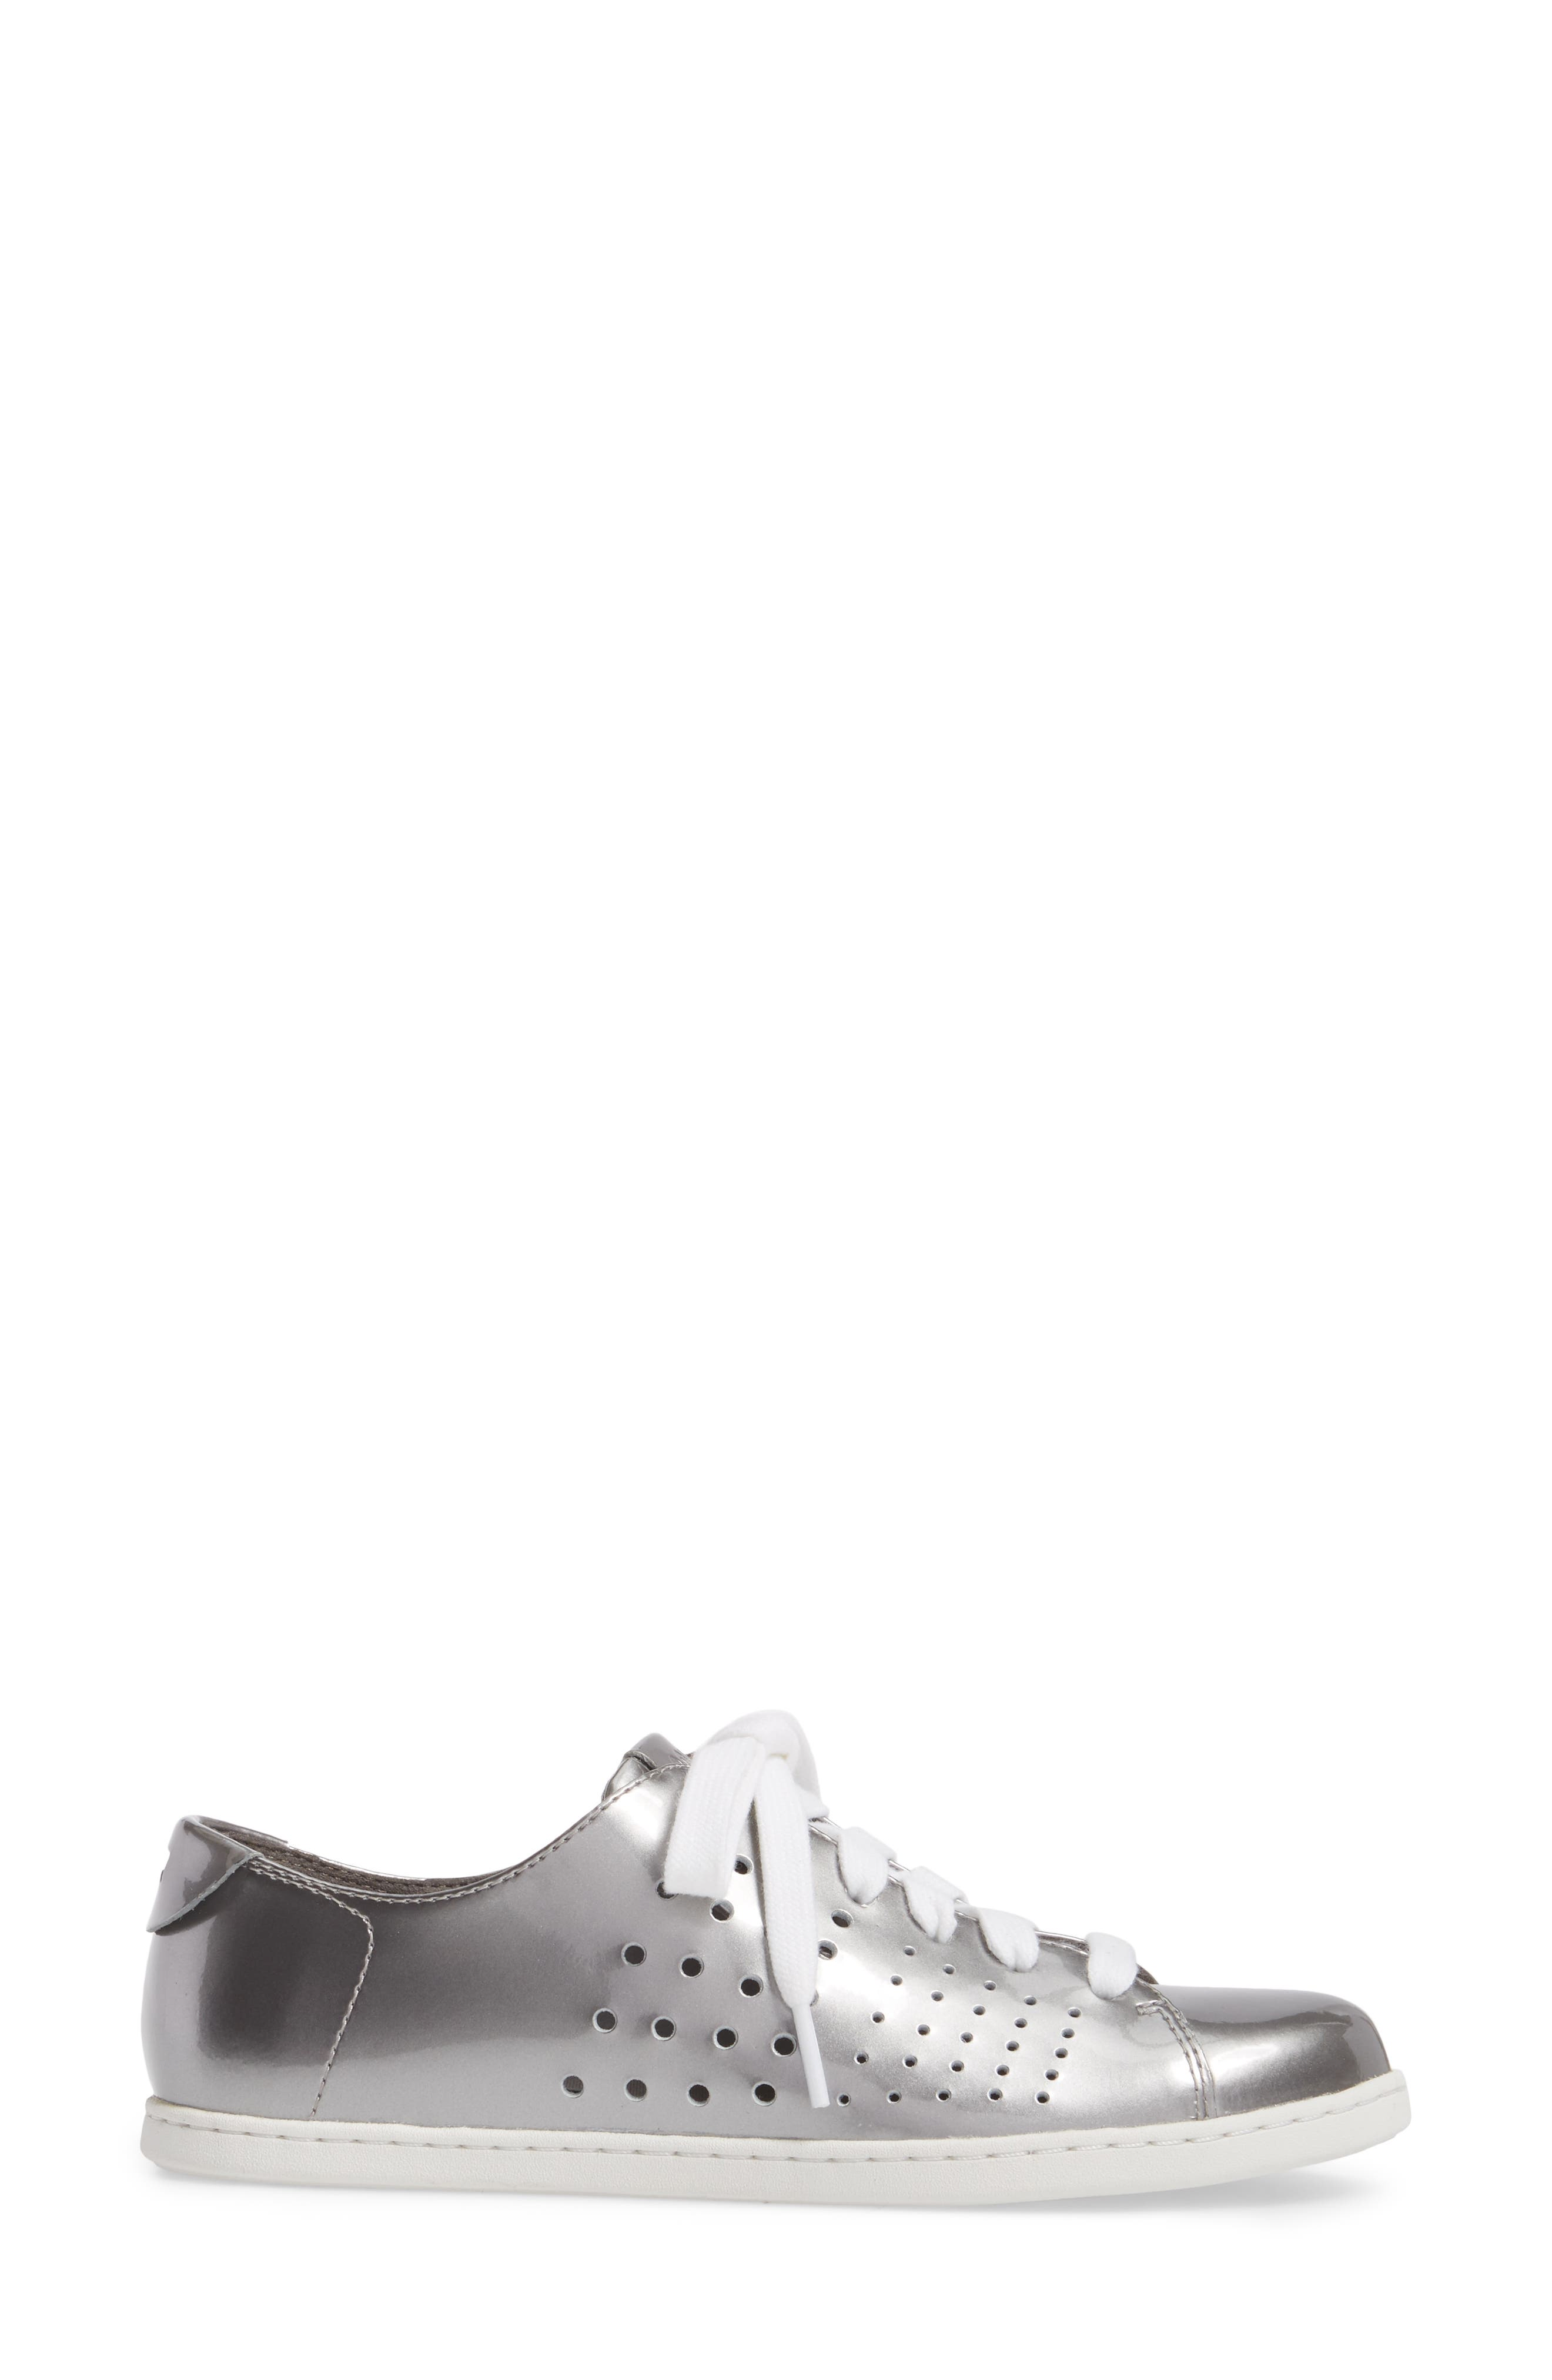 Twins Perforated Low Top Sneaker,                             Alternate thumbnail 3, color,